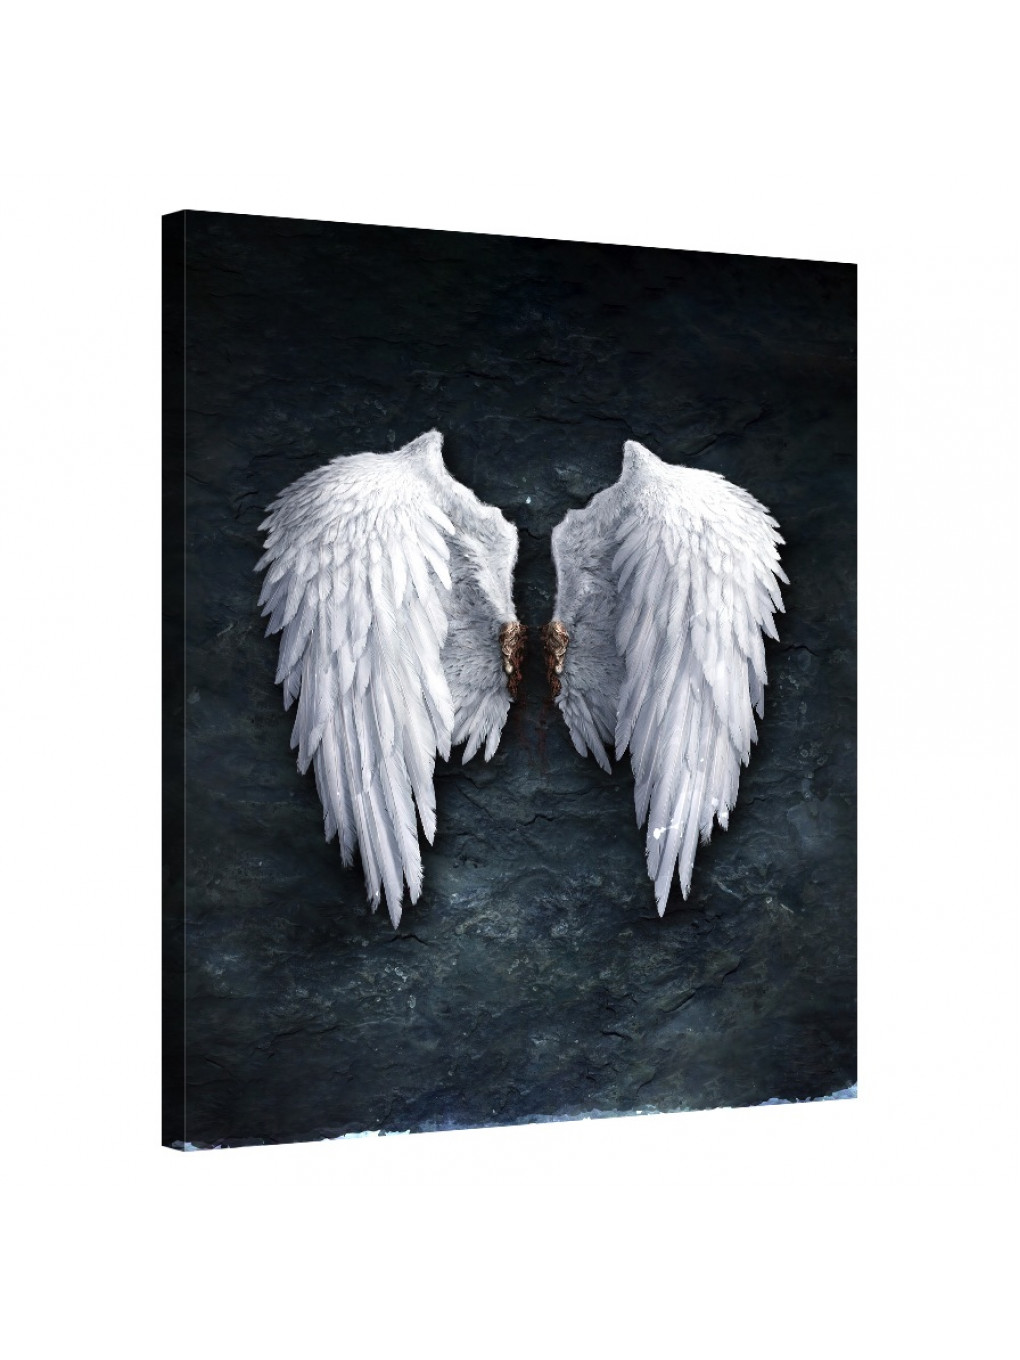 Celestial Wings_CEL142_0